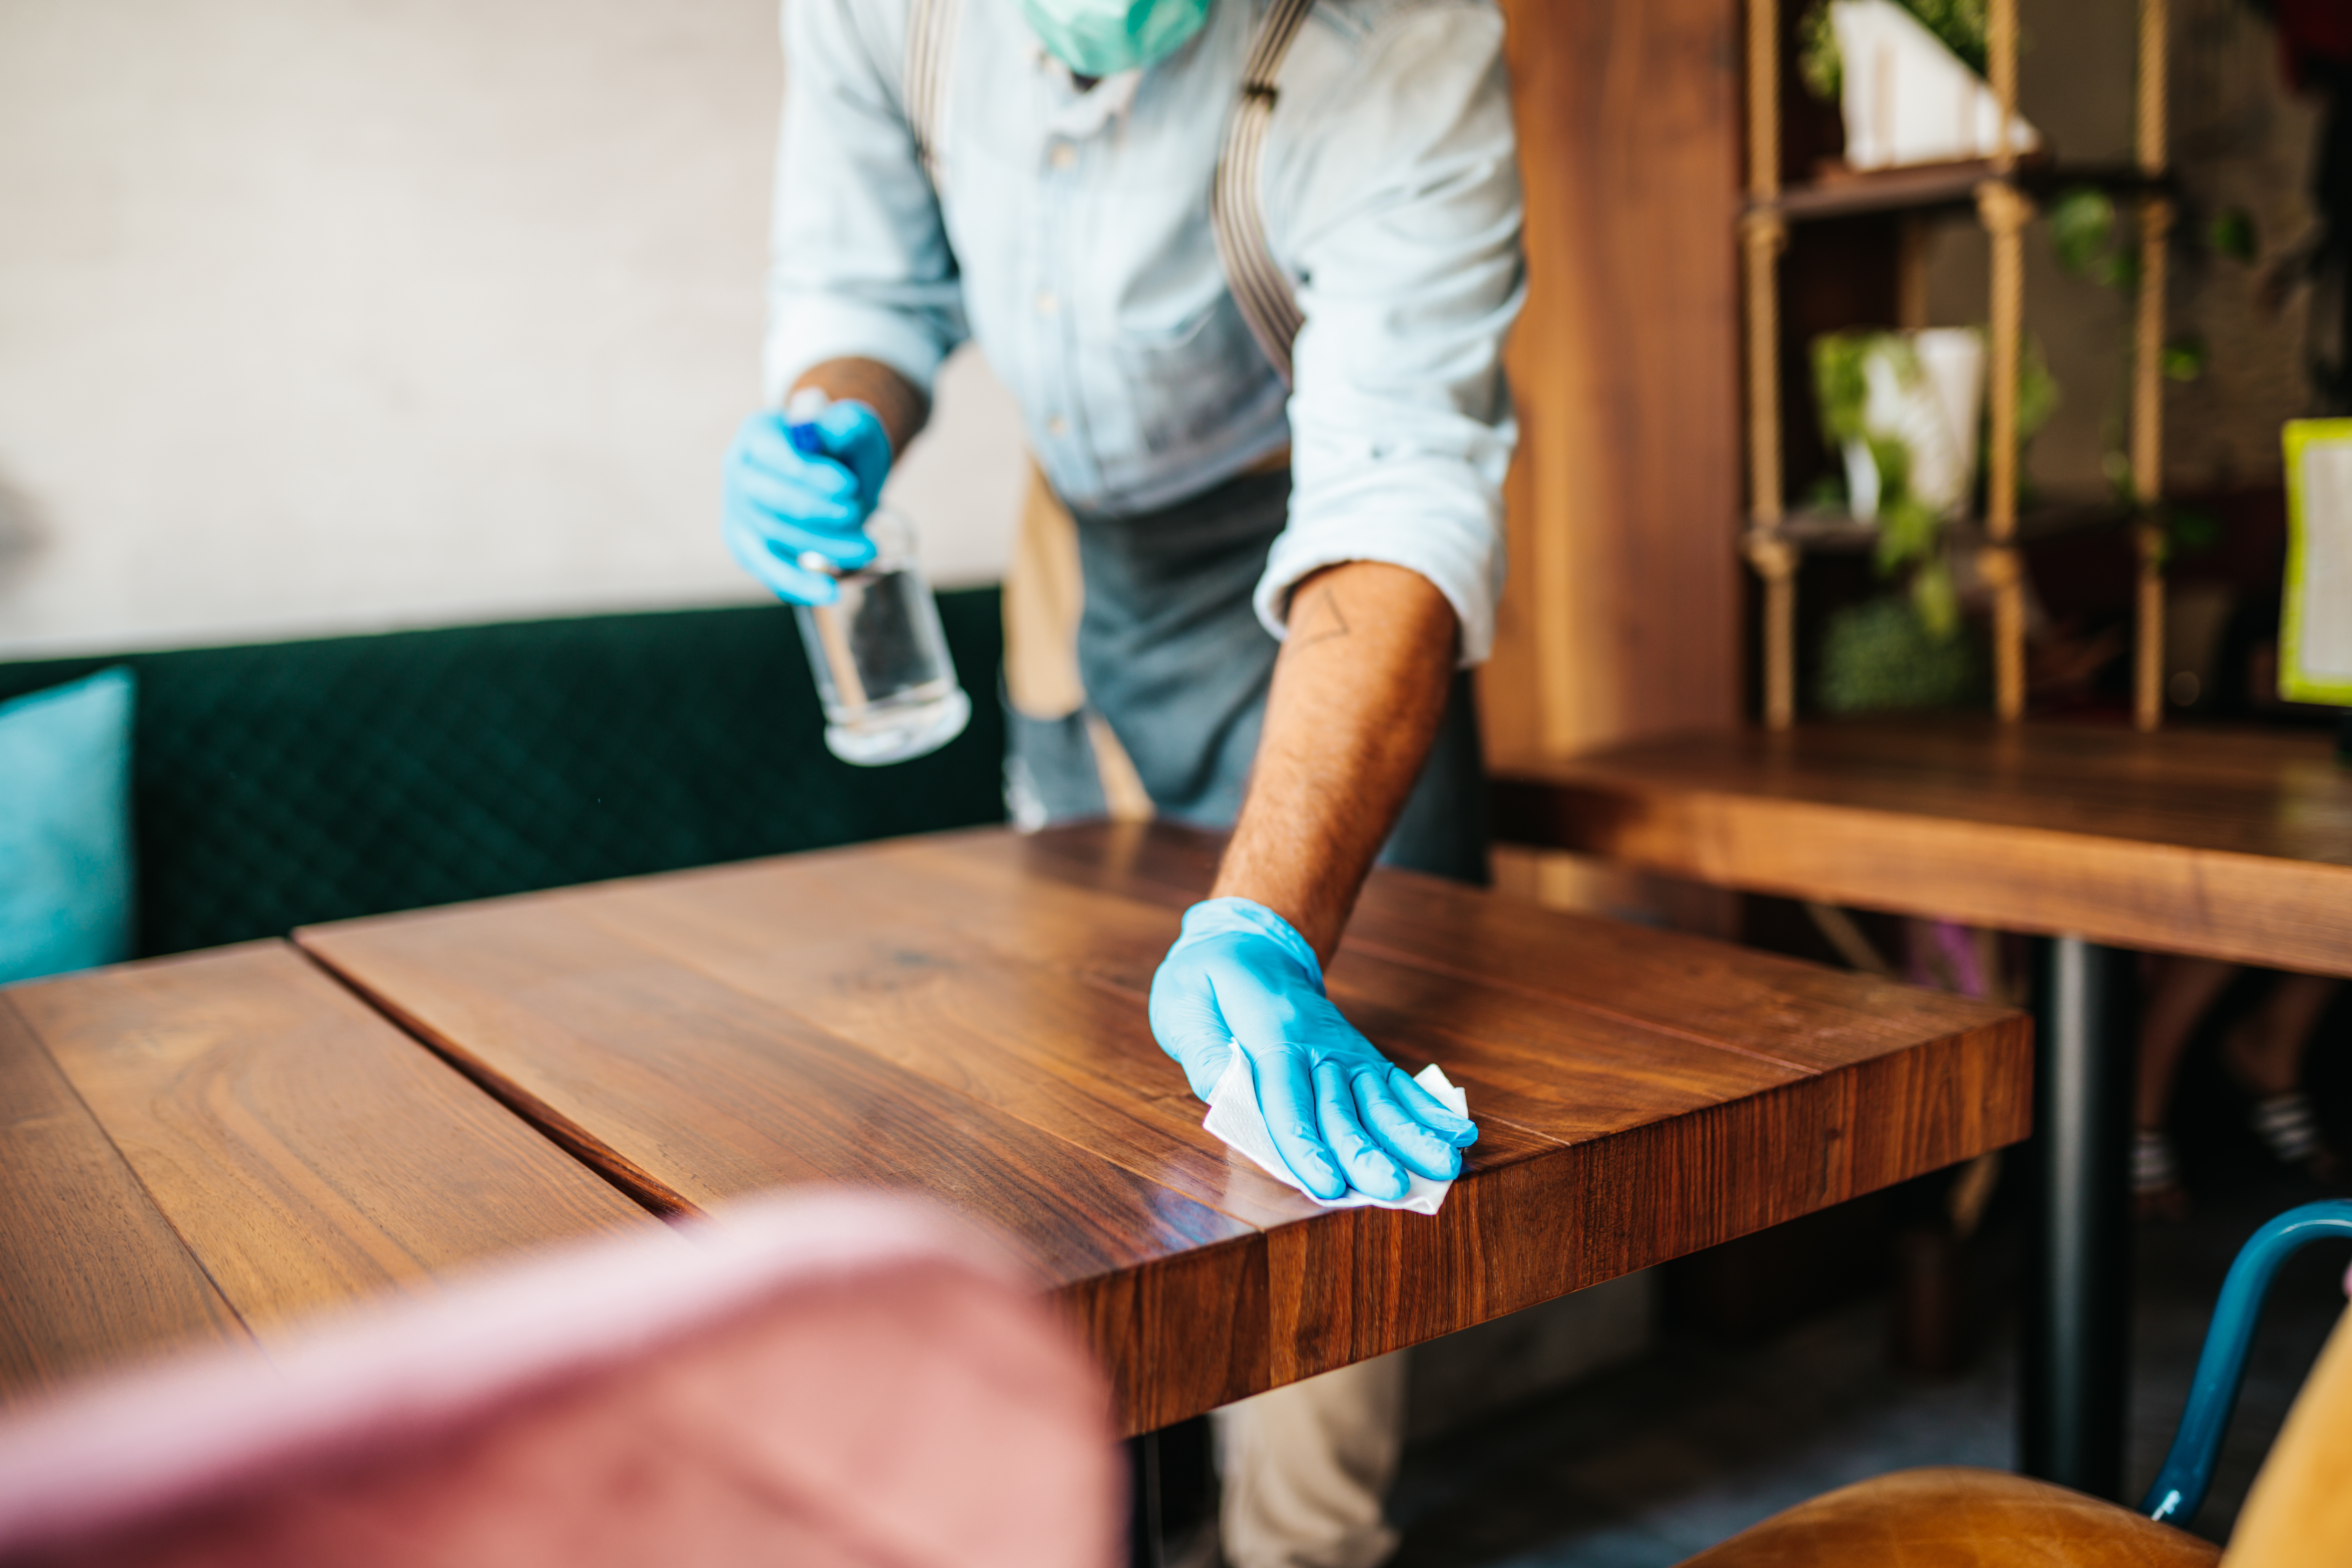 Waiter cleaning and disinfecting restaurant table for next customer. Corona virus and small business is open for work concept.